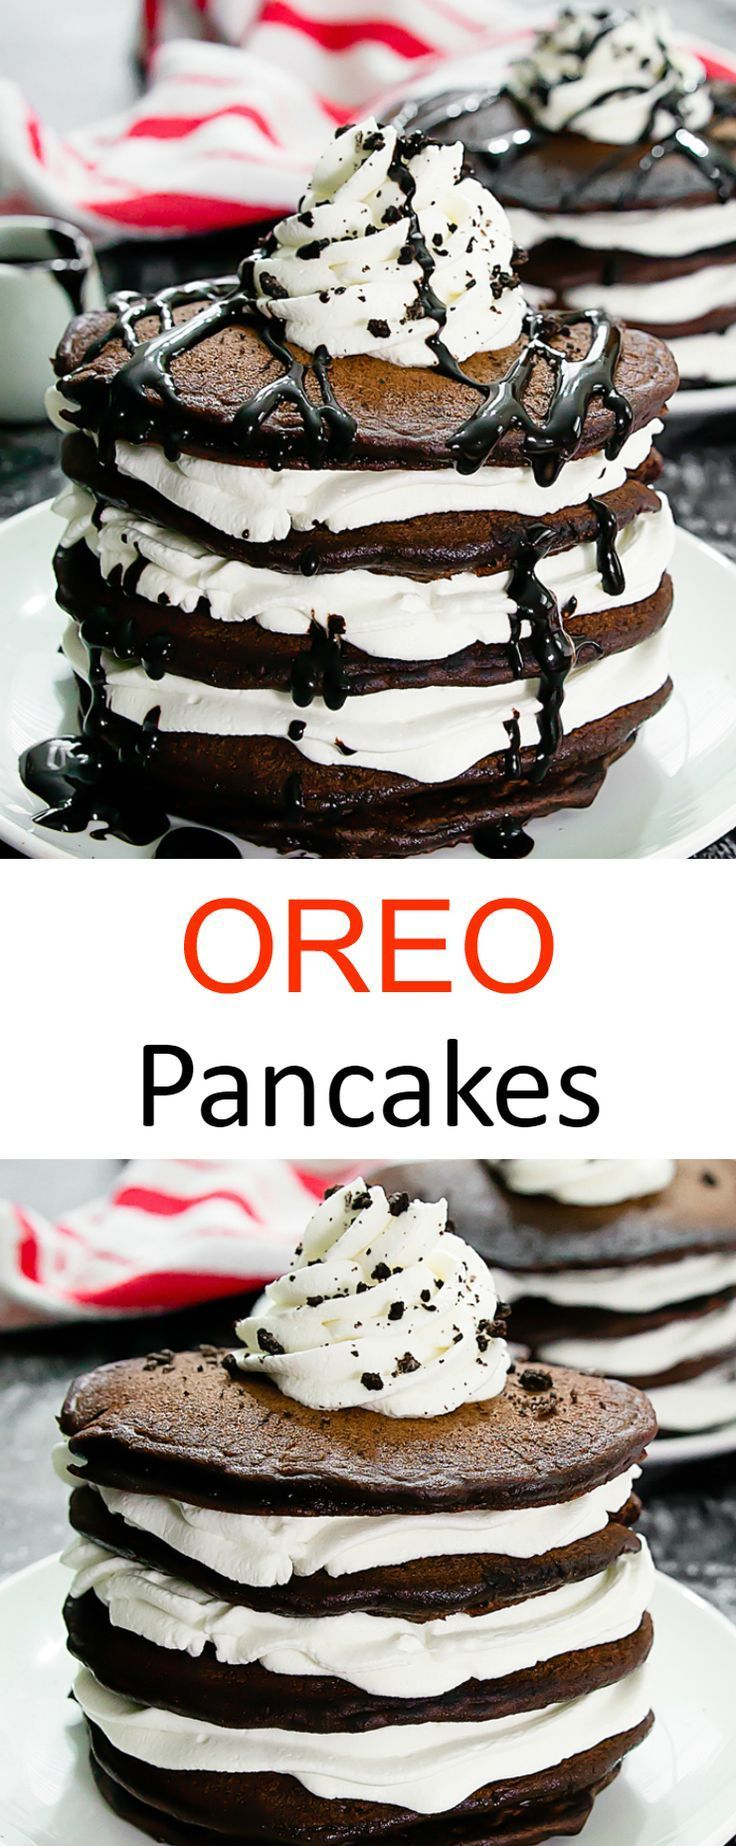 Oreo Pancakes. Chocolate cookies and cream flavored pancakes stacked together with layers of whipped cream. A fun breakfast or brunch!Everyday Savvy